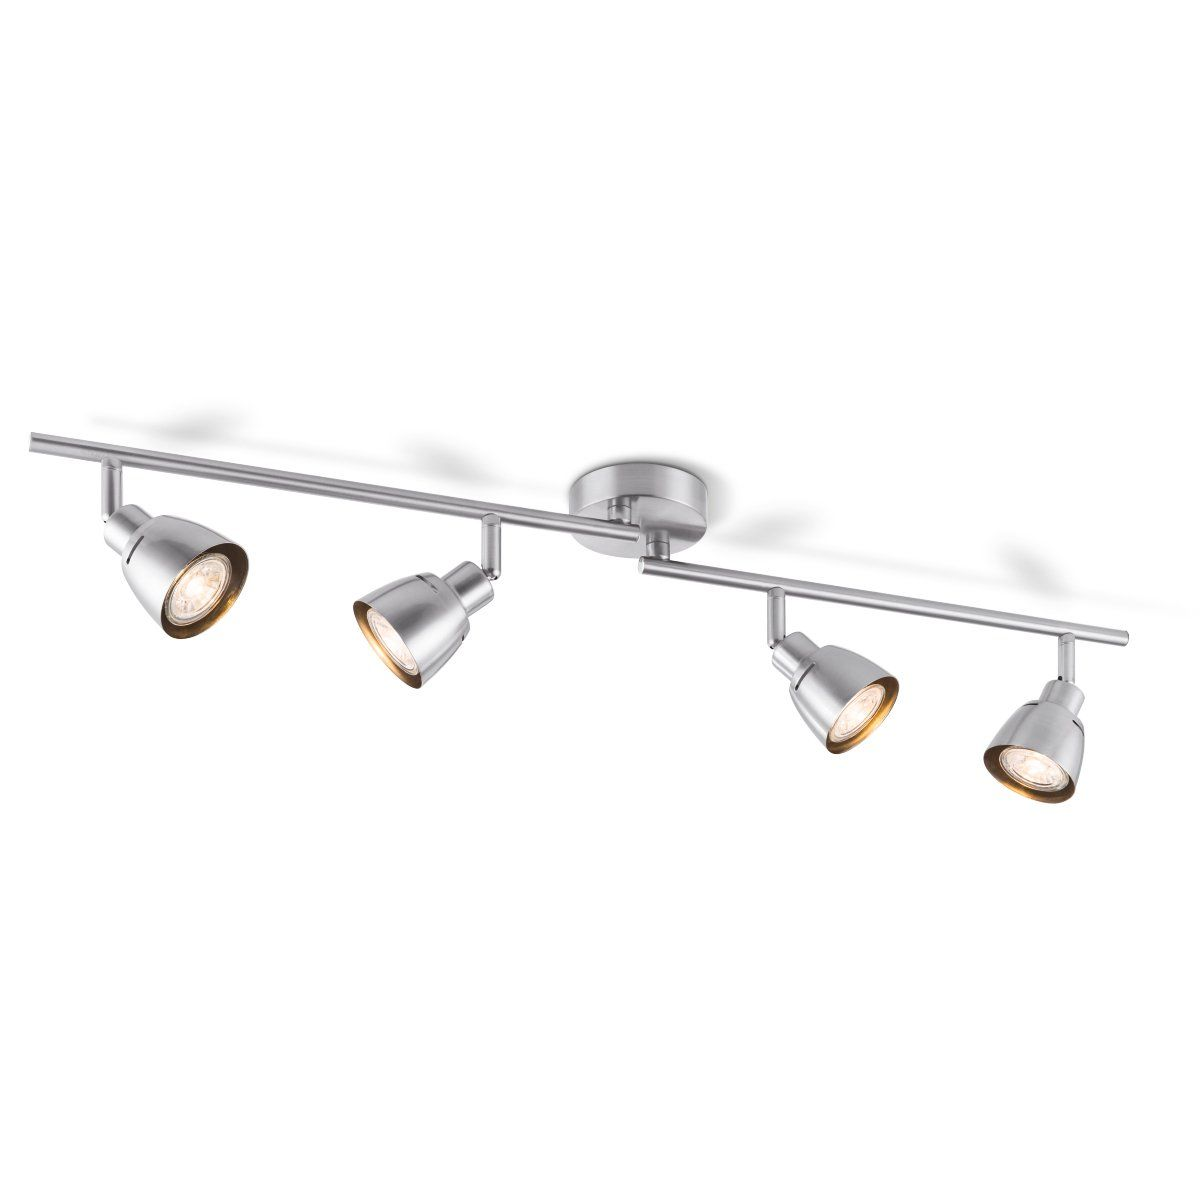 Home sweet home LED opbouwspot Aka 4 lichts ↔ 80,5 cm - mat staal